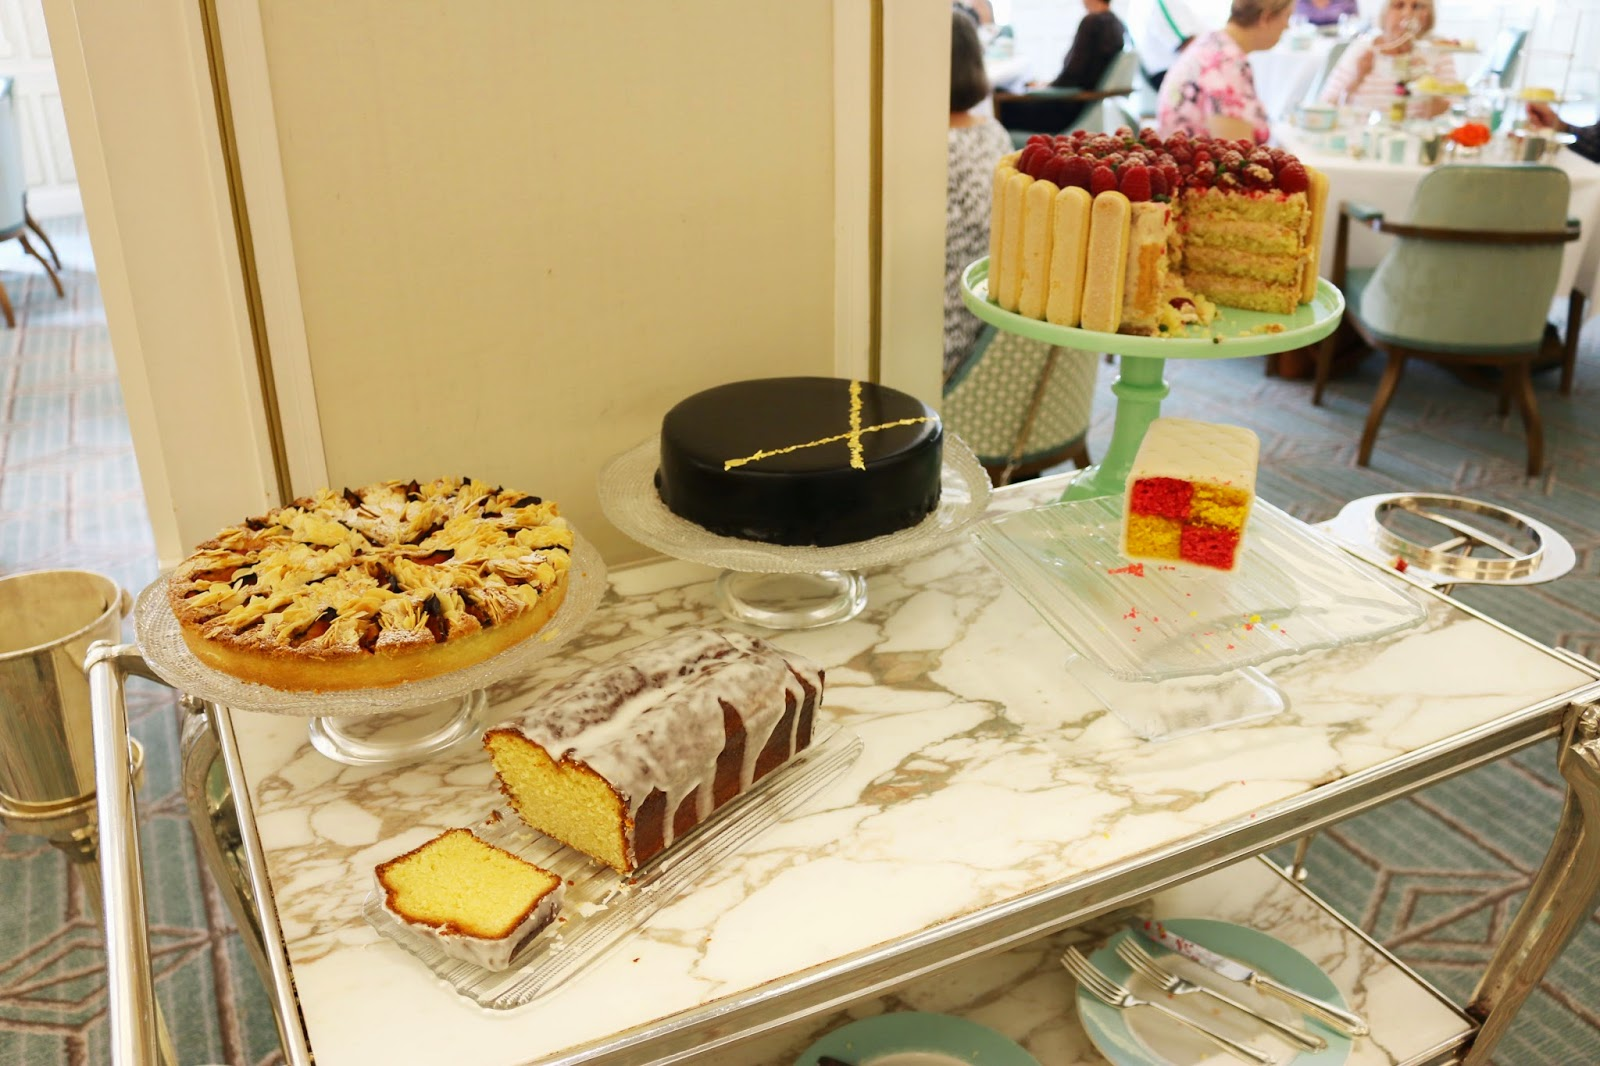 Fortnum & Mason Diamond Jubilee Tea Salon - Dessert Trolley